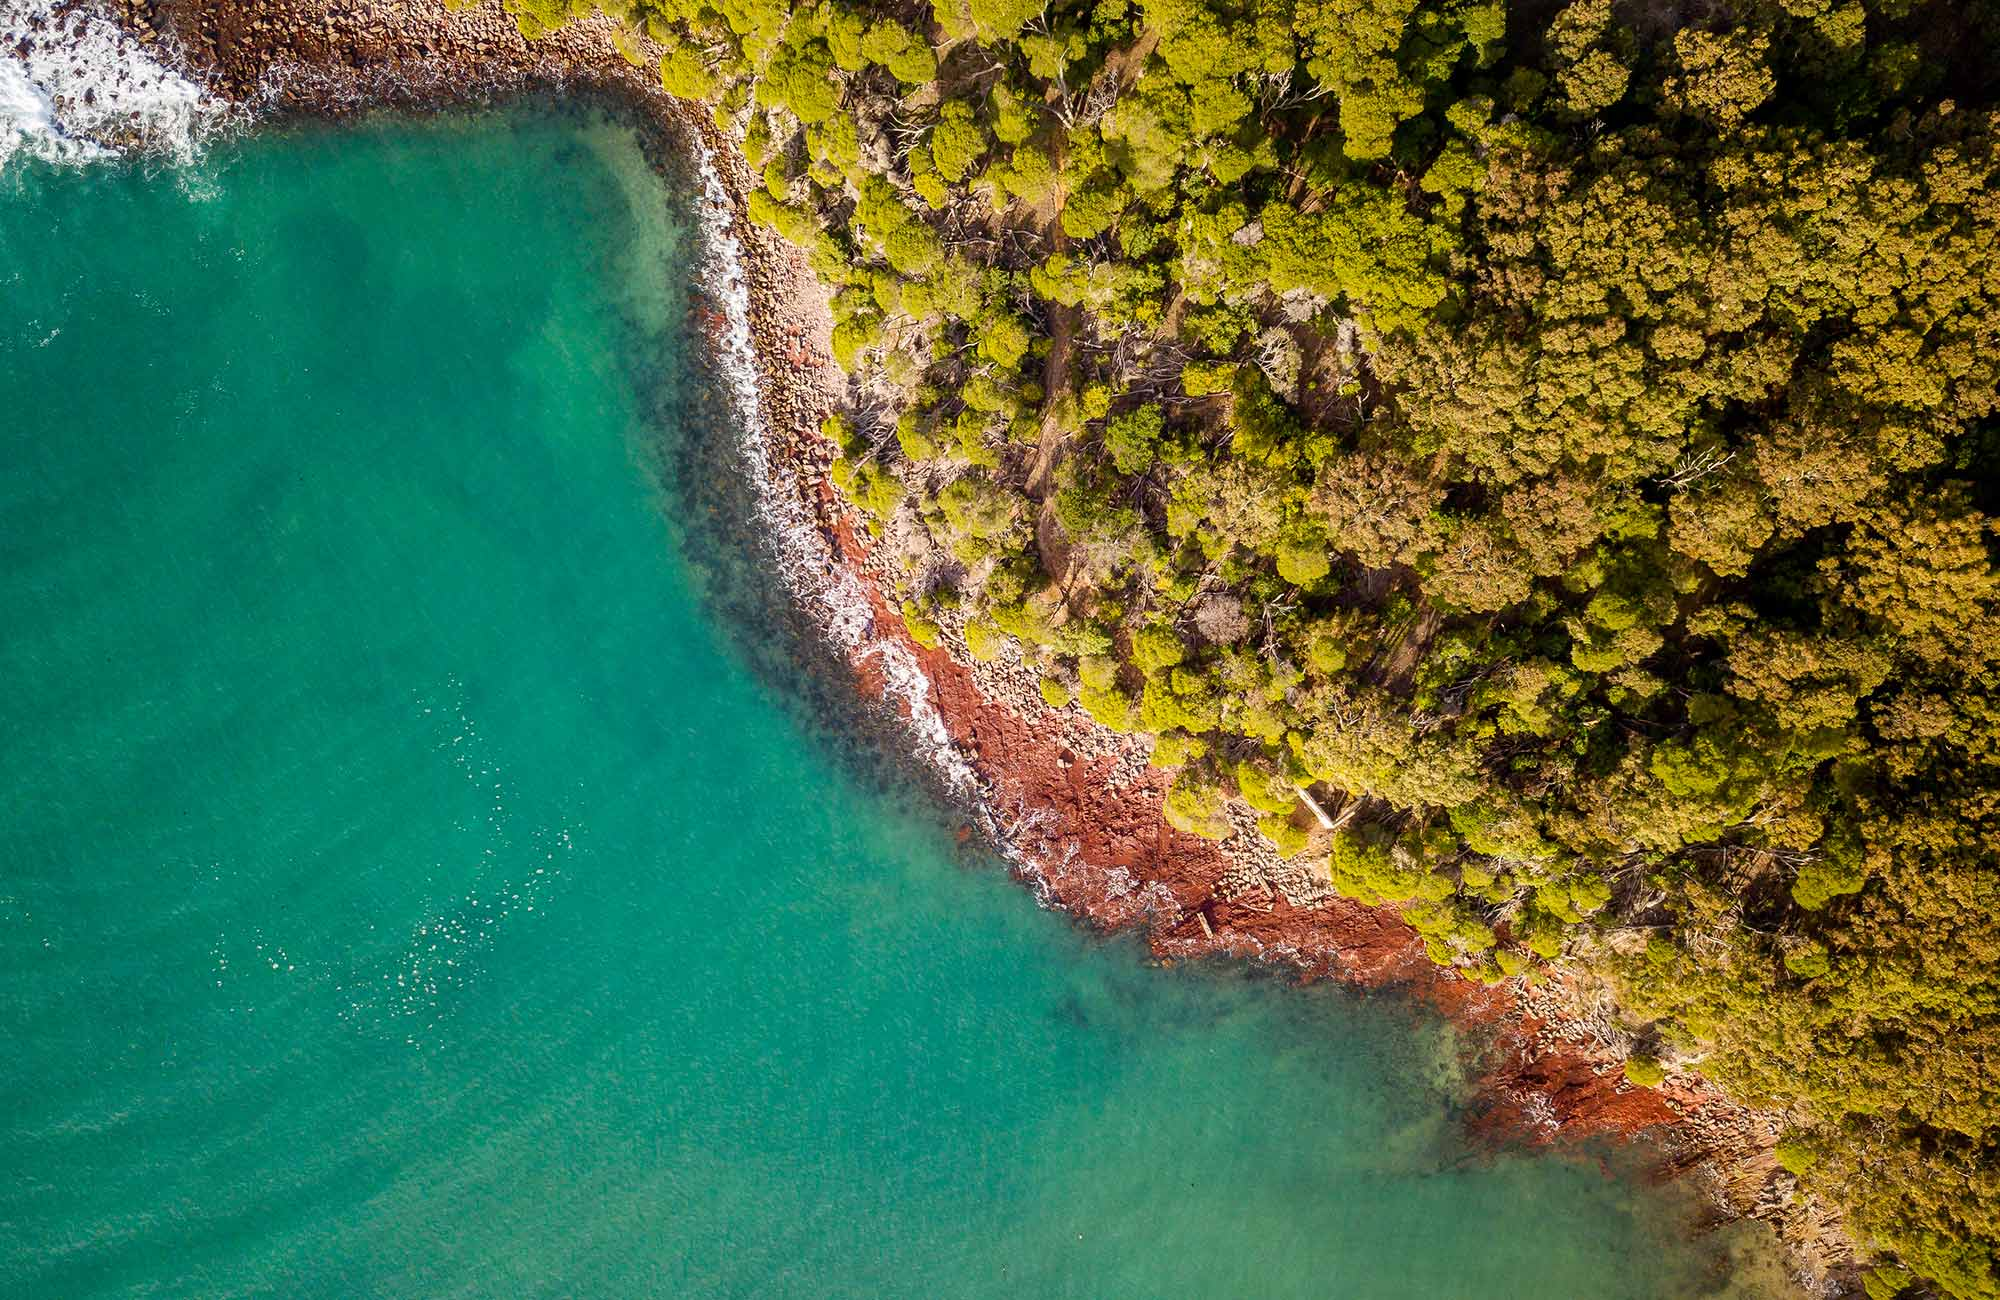 Aerial view of the ocean and trees at Bittangabee Bay. Photo: John Spencer/OEH